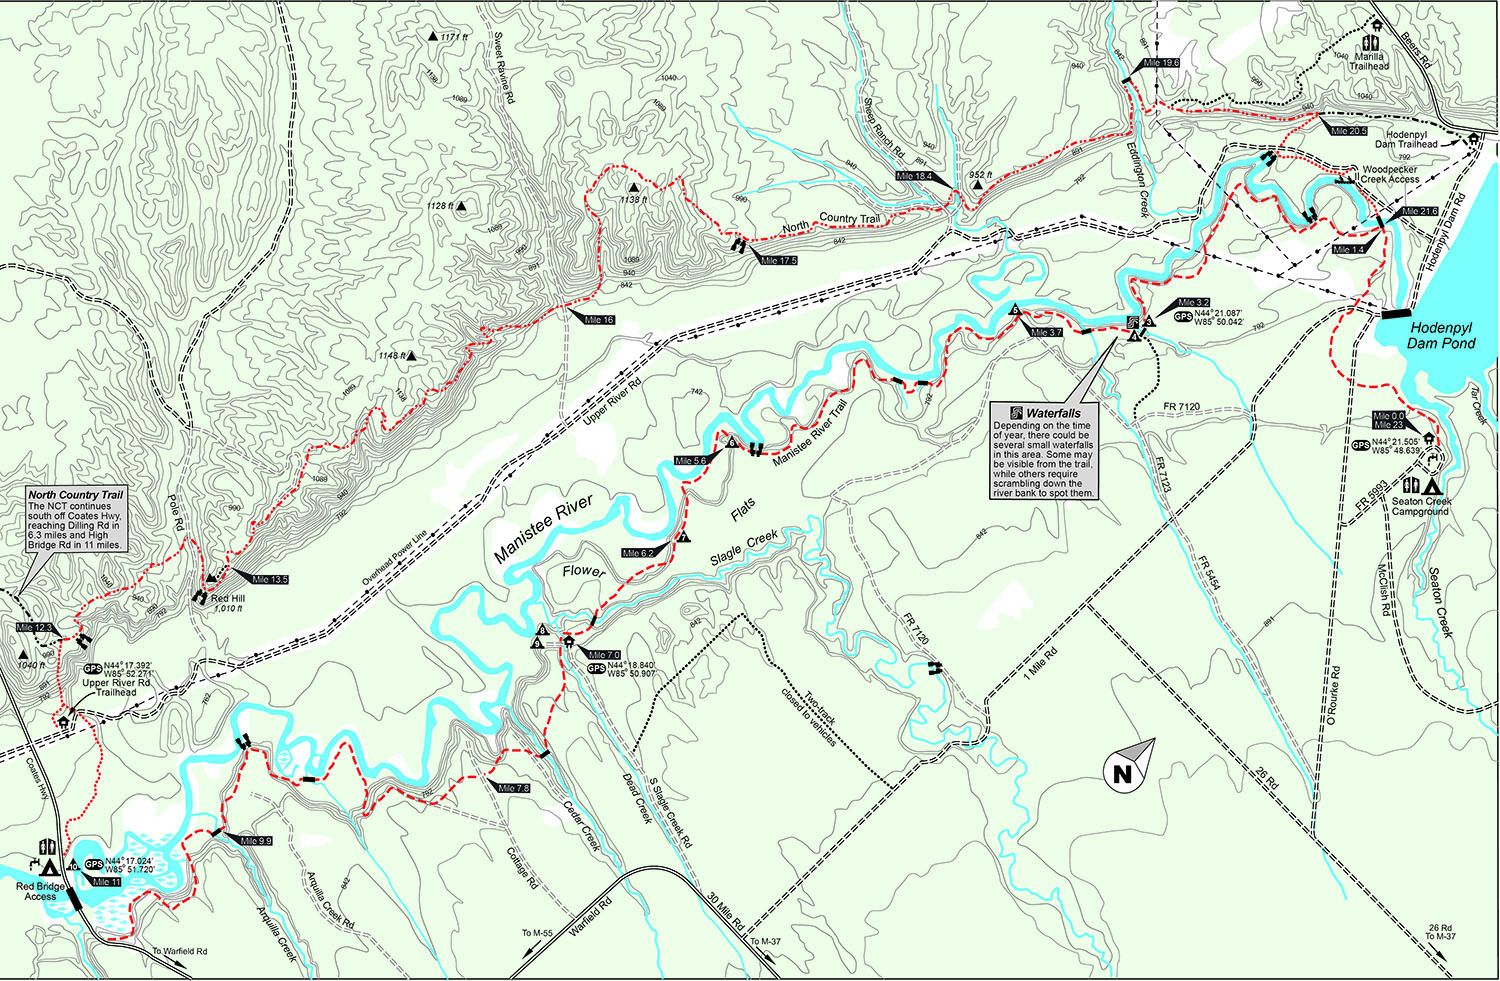 Manistee River Trail-Manistee National Forest   Trips ... on colorado off-road trail maps, inyo ca forestry maps, chippewa national forest maps, colorado forest maps, manistee county forest map, ludington state park trail maps, manistee north bridge road high, vintage michigan county maps, manistee michigan national park, angeles national forest trails maps, manistee national forest trail heads, chippewa indians michigan history maps, manistee county street maps, sam houston national forest hiking maps, ms national forests maps, chiricahua mountains trail maps, southern sierra nevada ohv trail maps, manistee river, cdot mile marker maps,